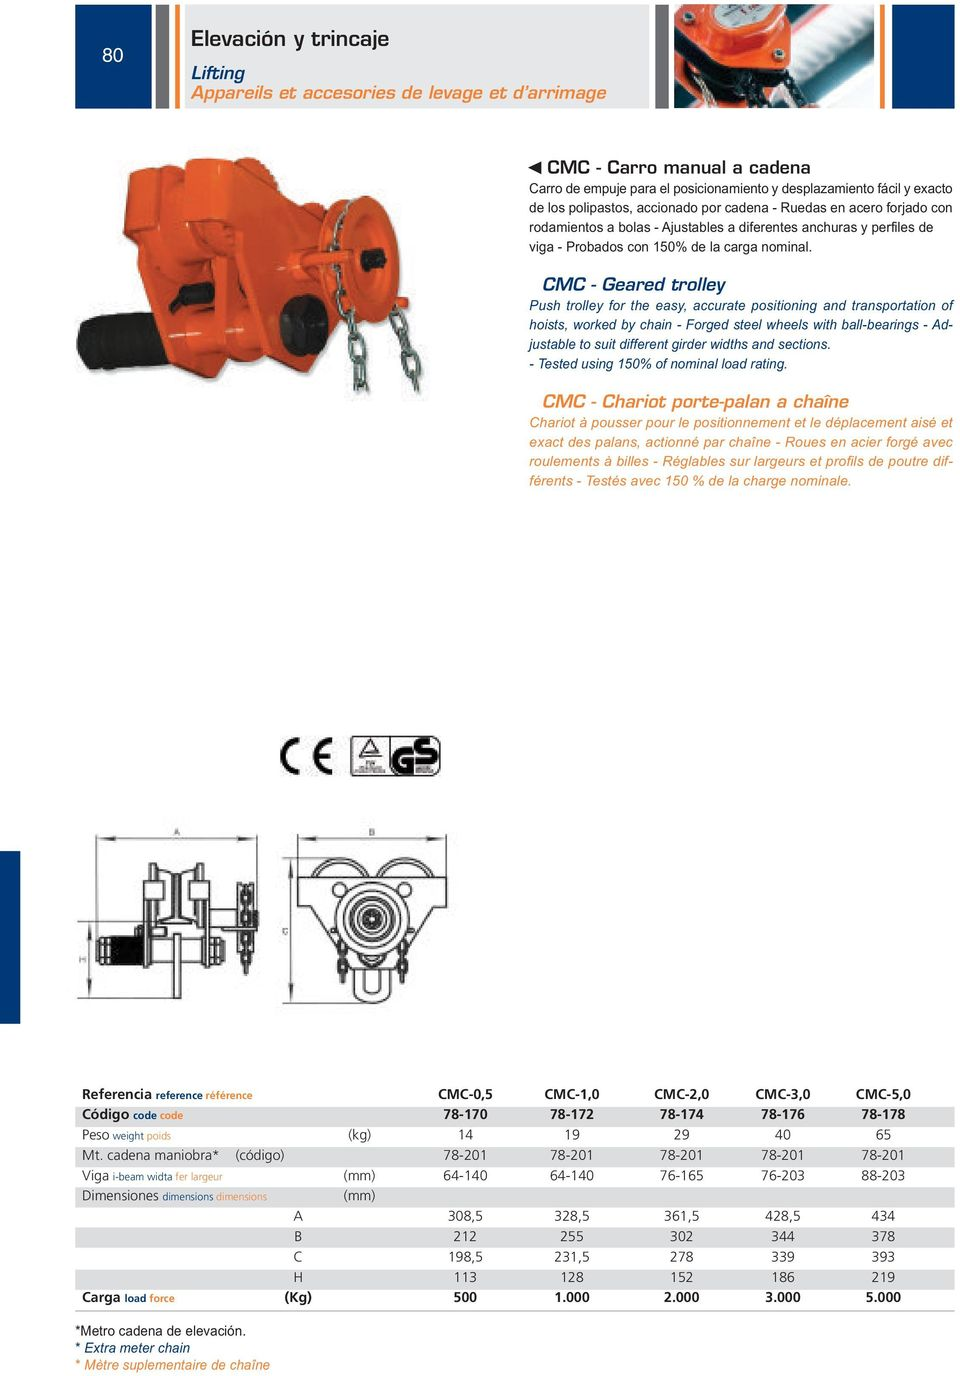 CMC - Geared trolley Push trolley for the easy, accurate positioning and transportation of hoists, worked by chain - Forged steel wheels with ball-bearings - Adjustable to suit different girder